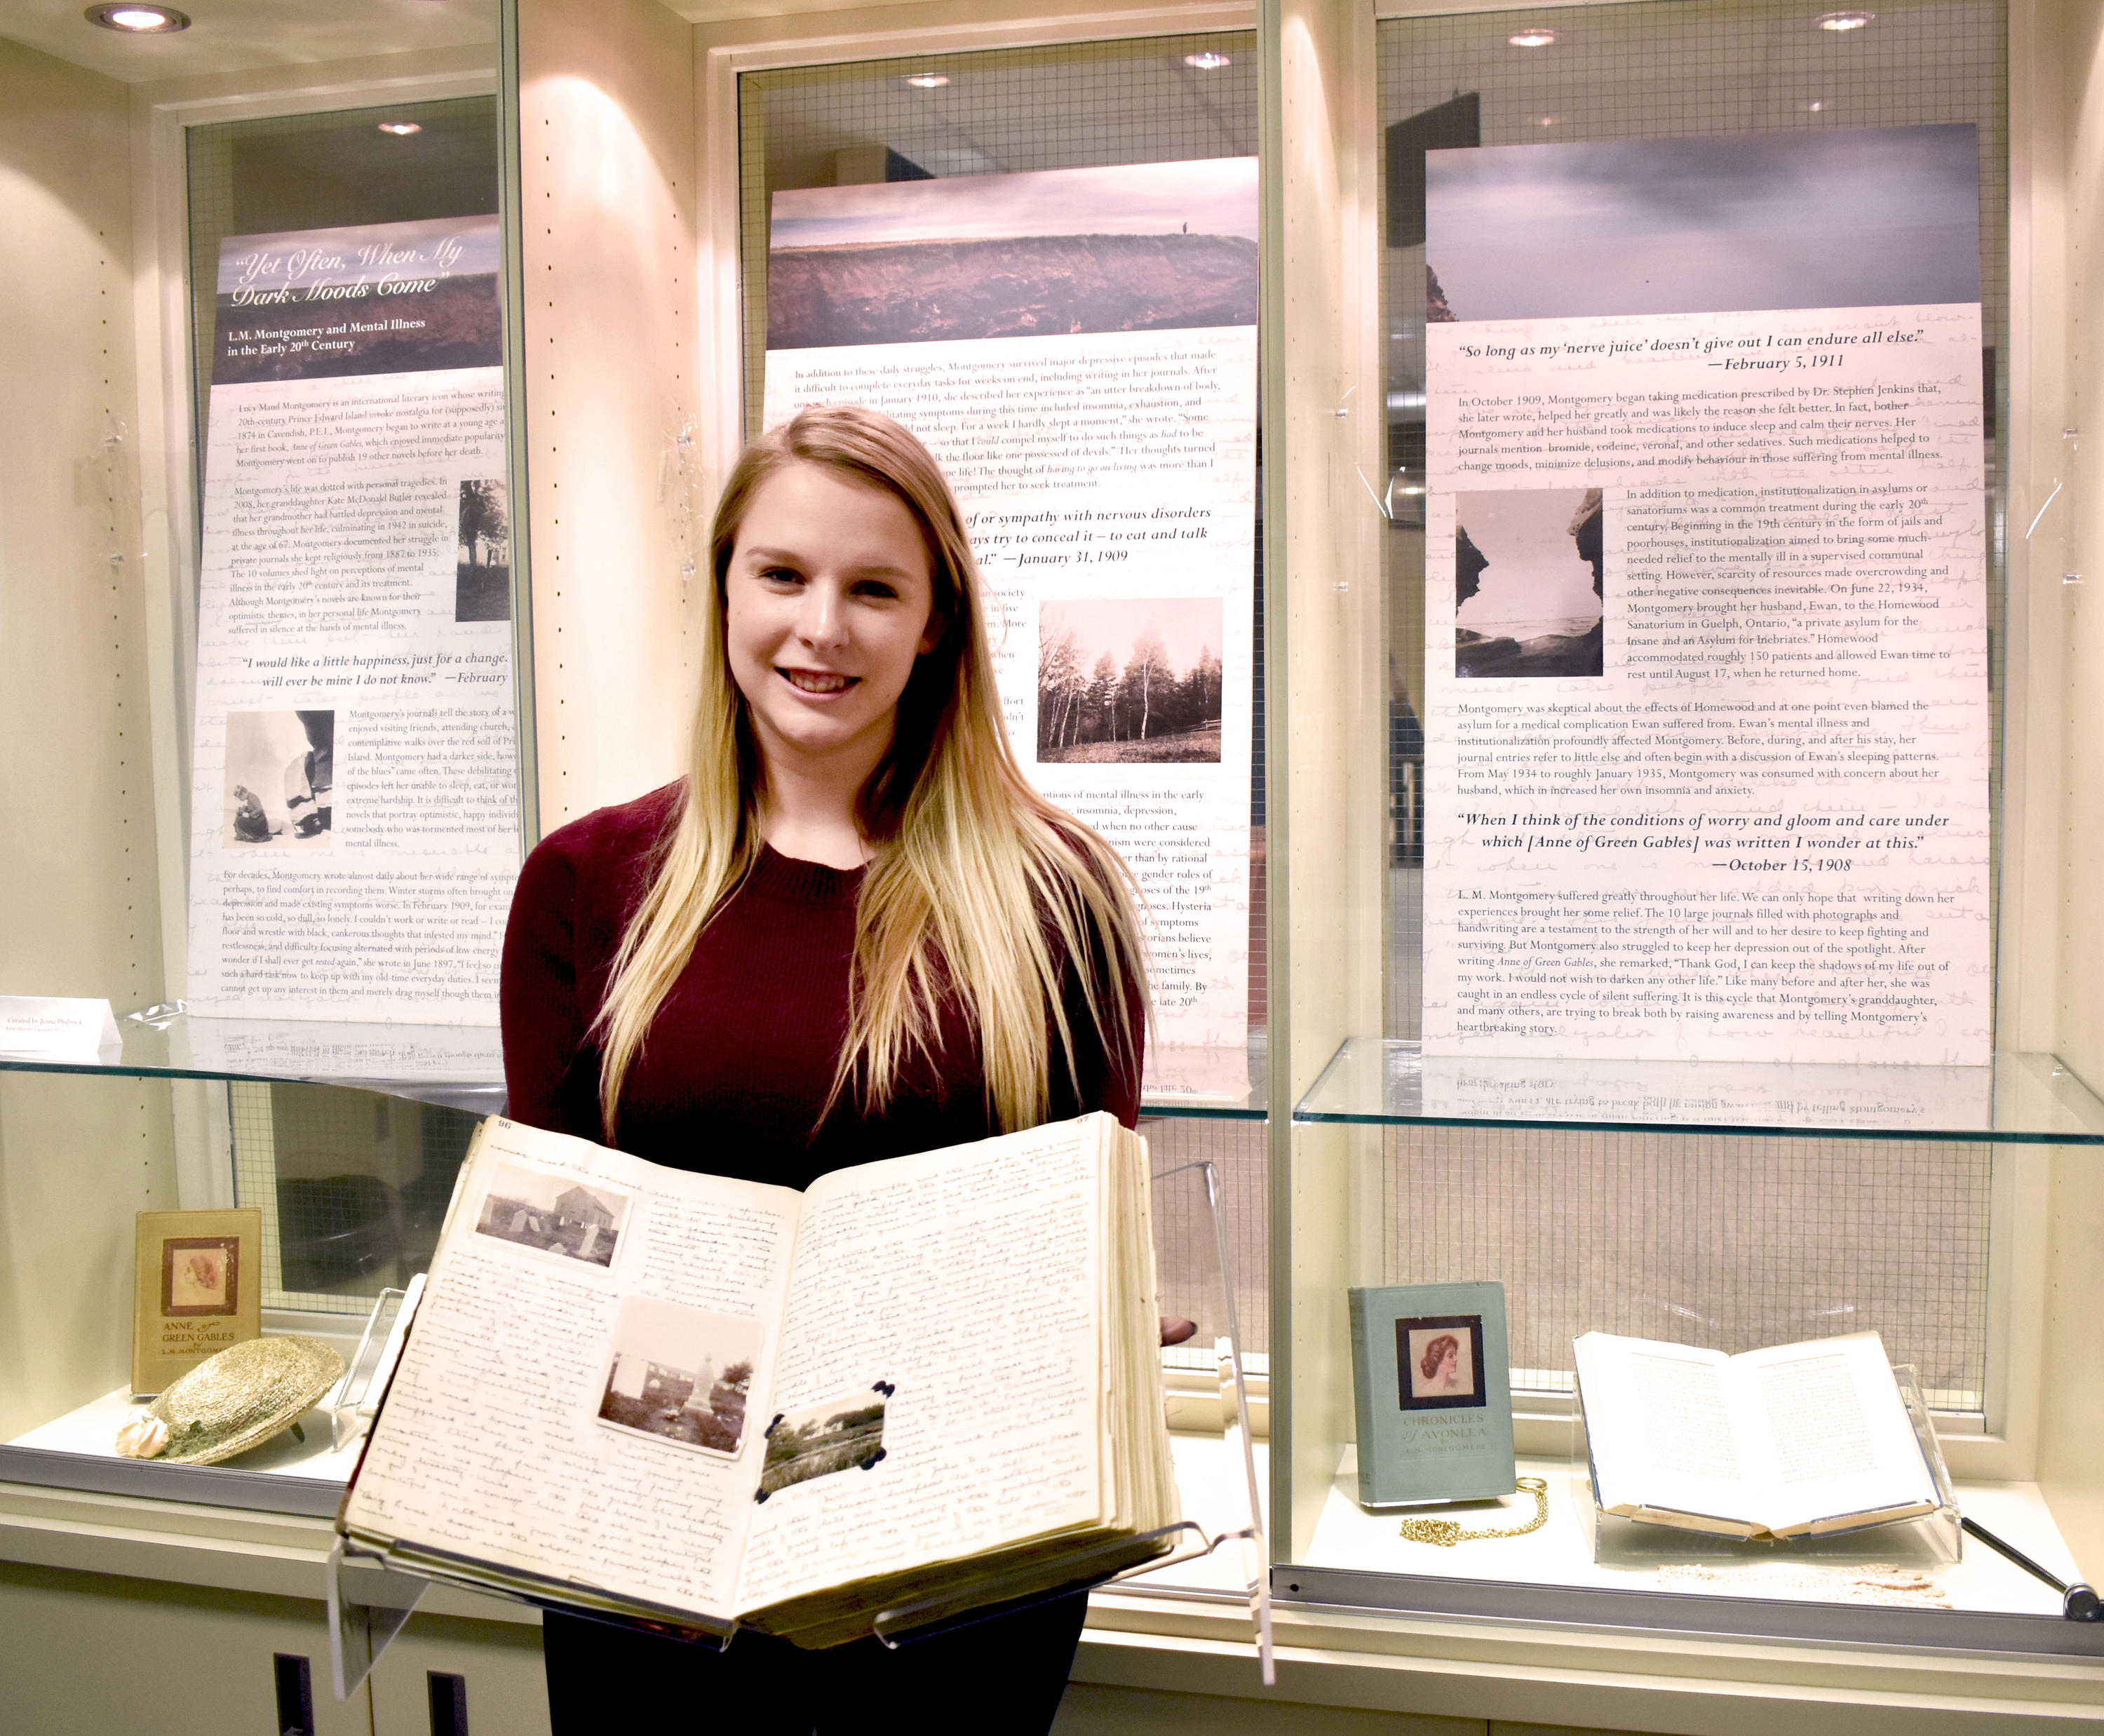 Jenna holding journal in front of display